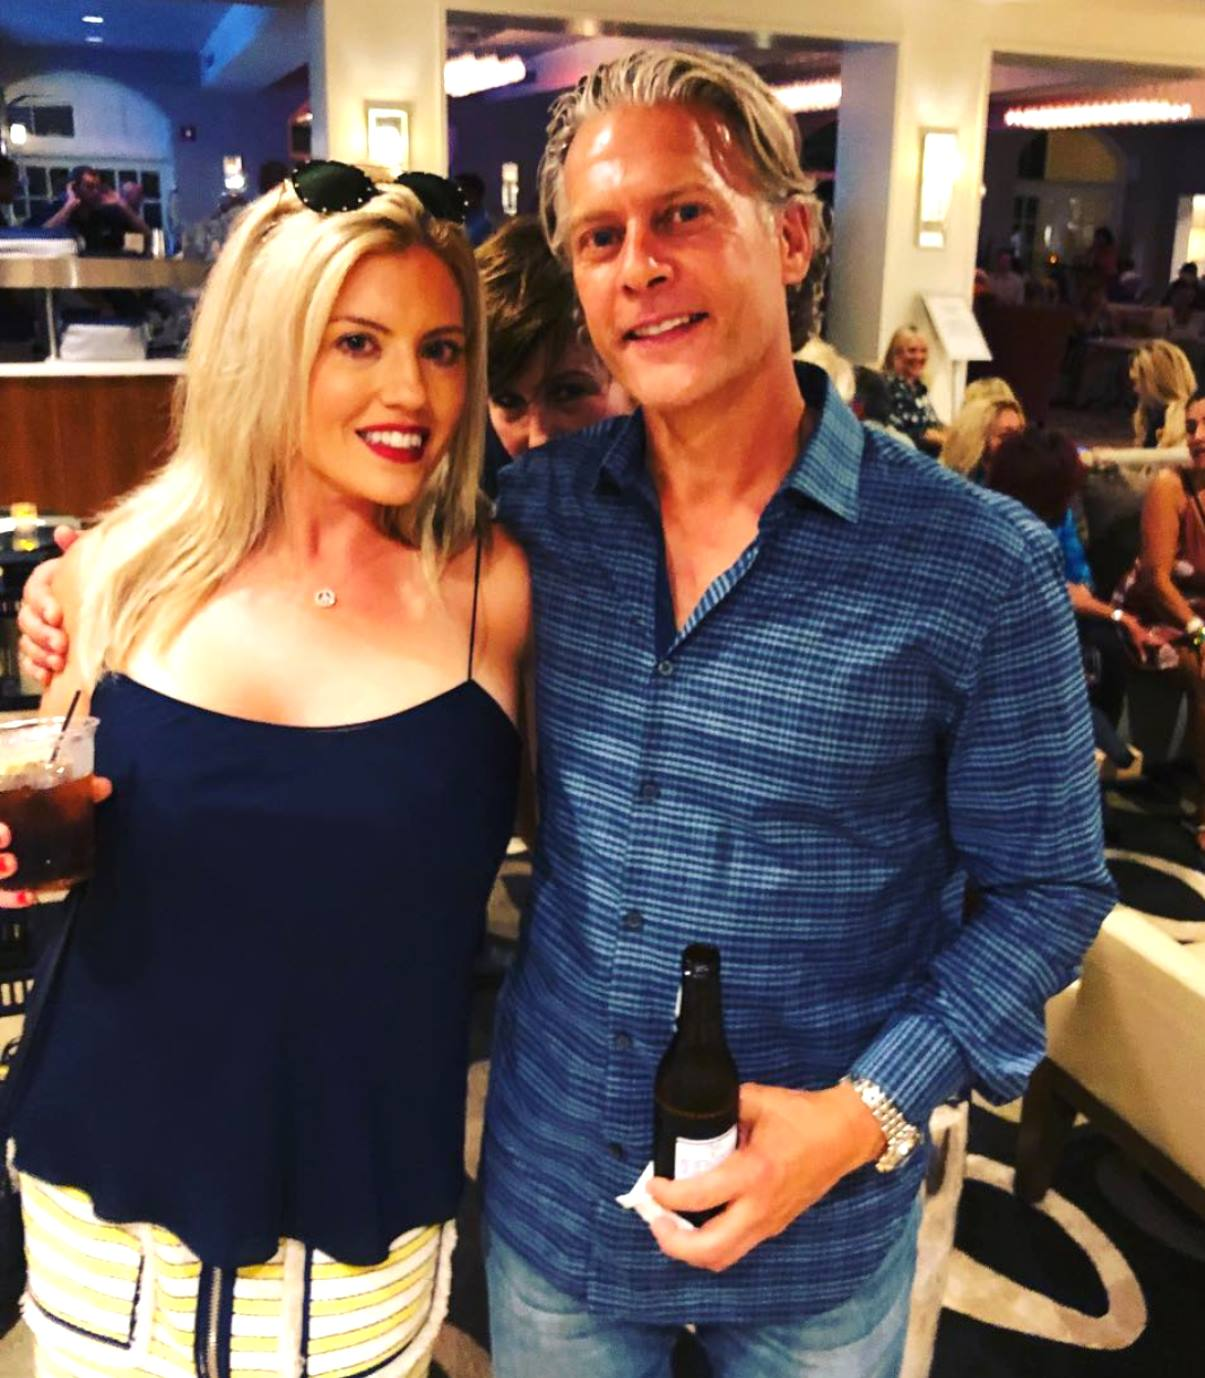 RHOC David Beador girlfriend Lesley Cook Update